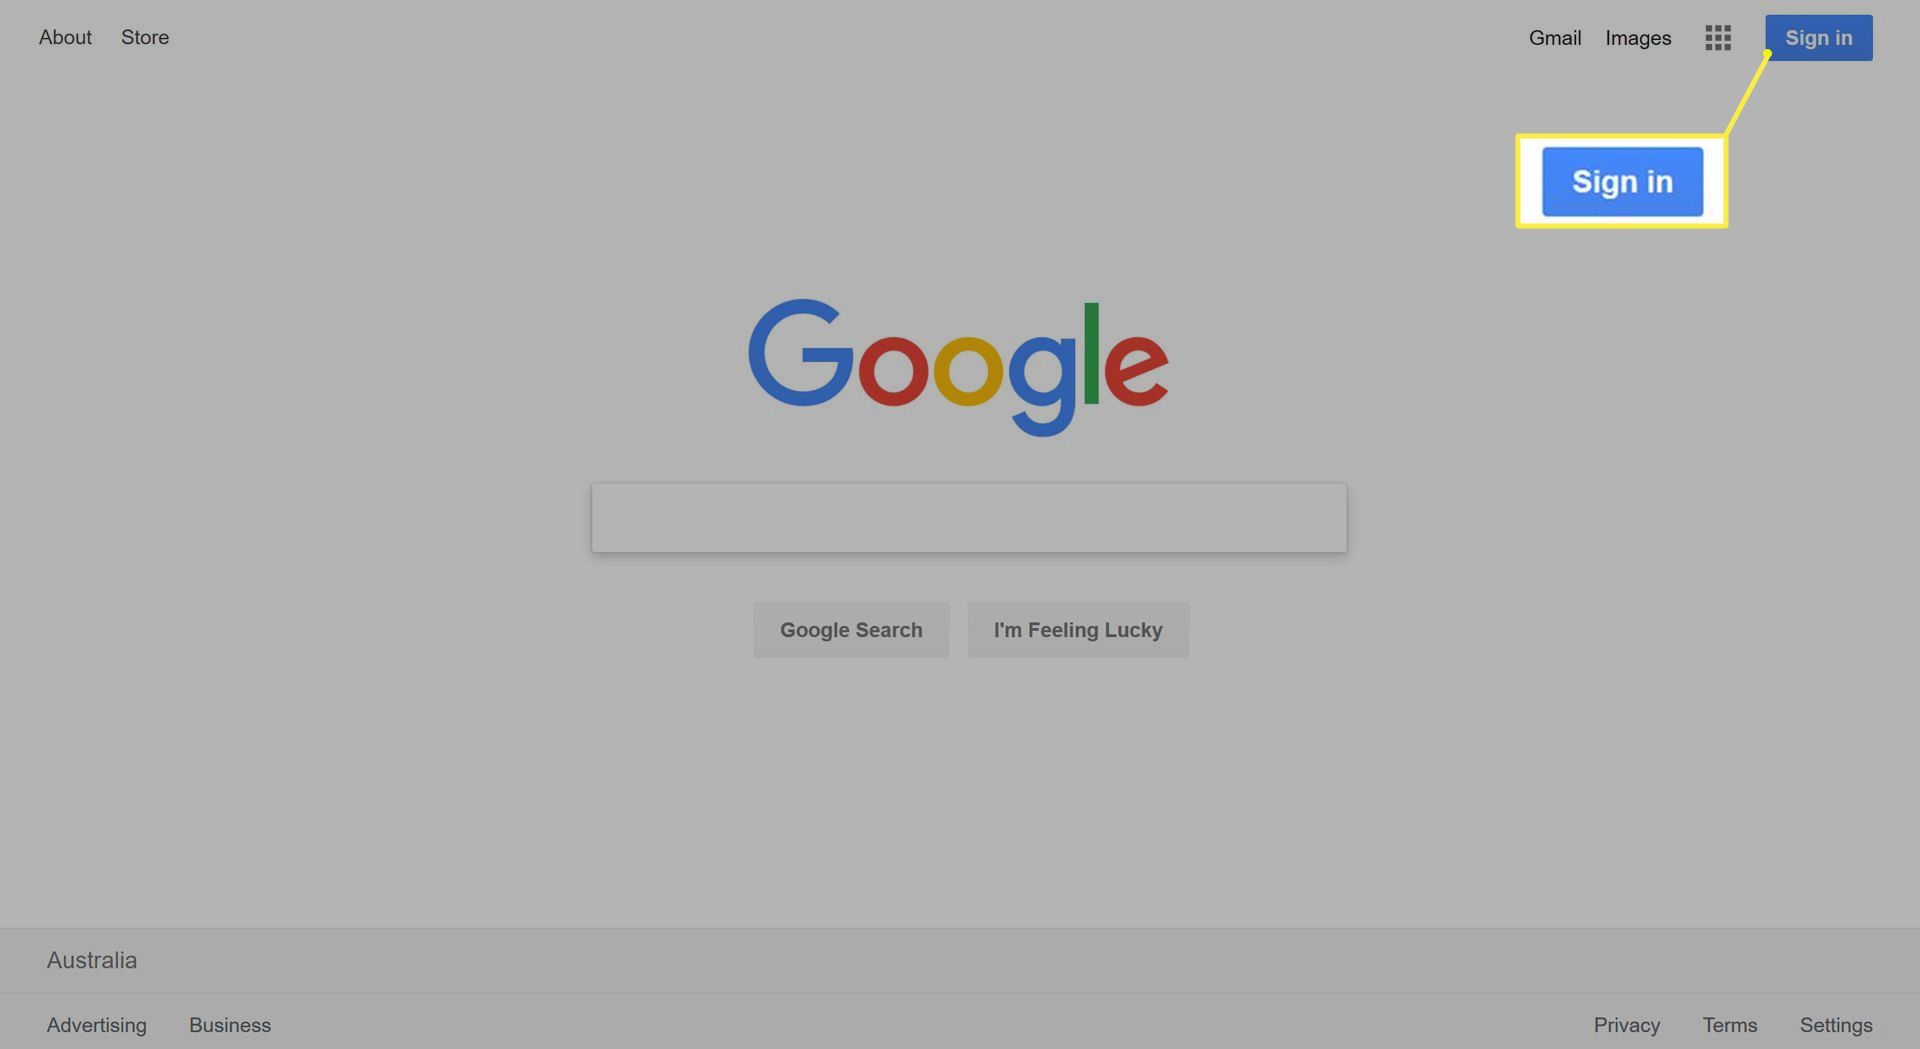 Sign in button on Google home page